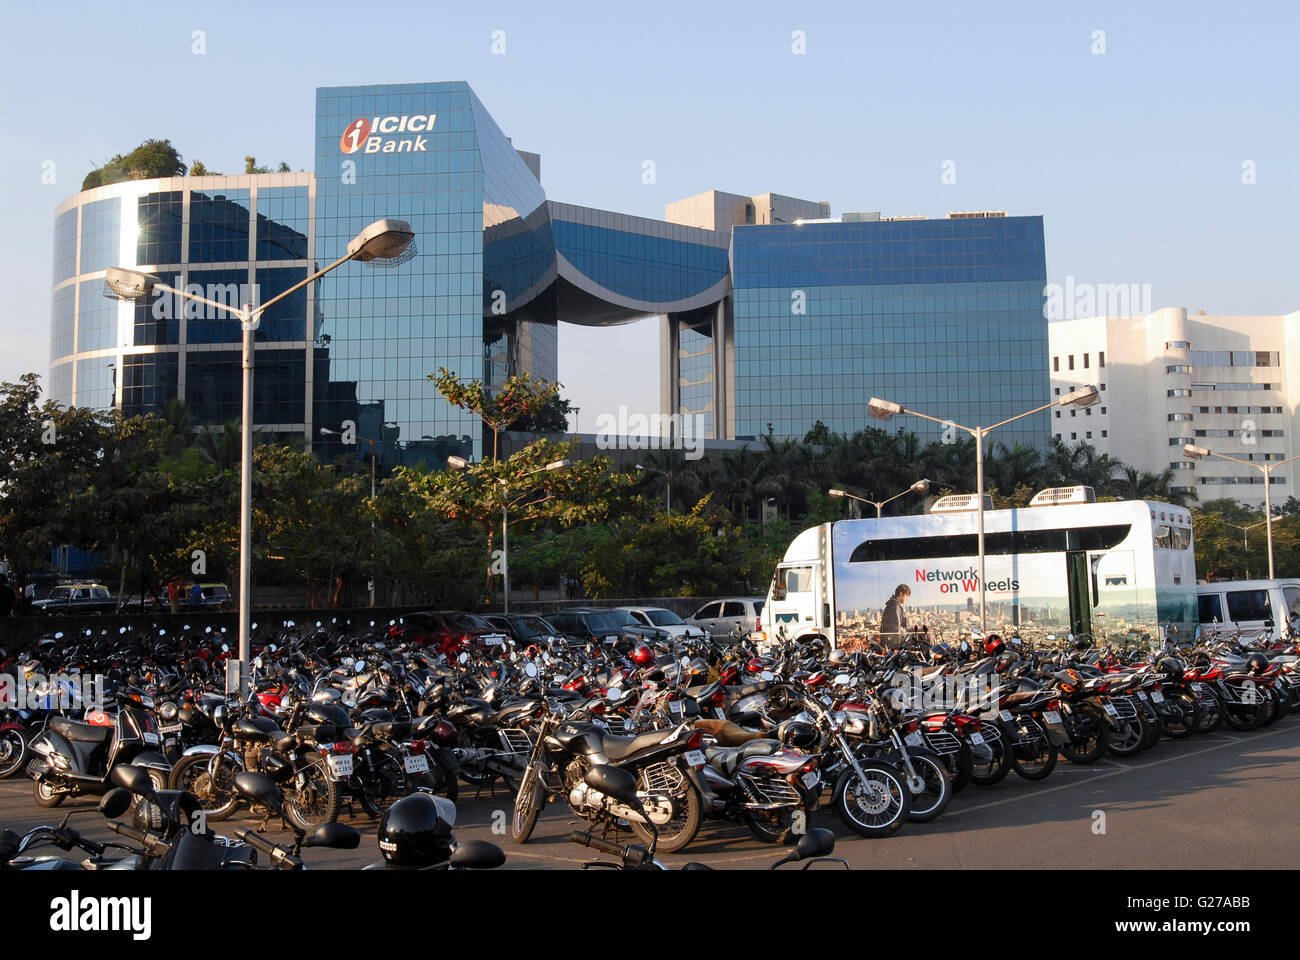 IciciStock Photos and Images